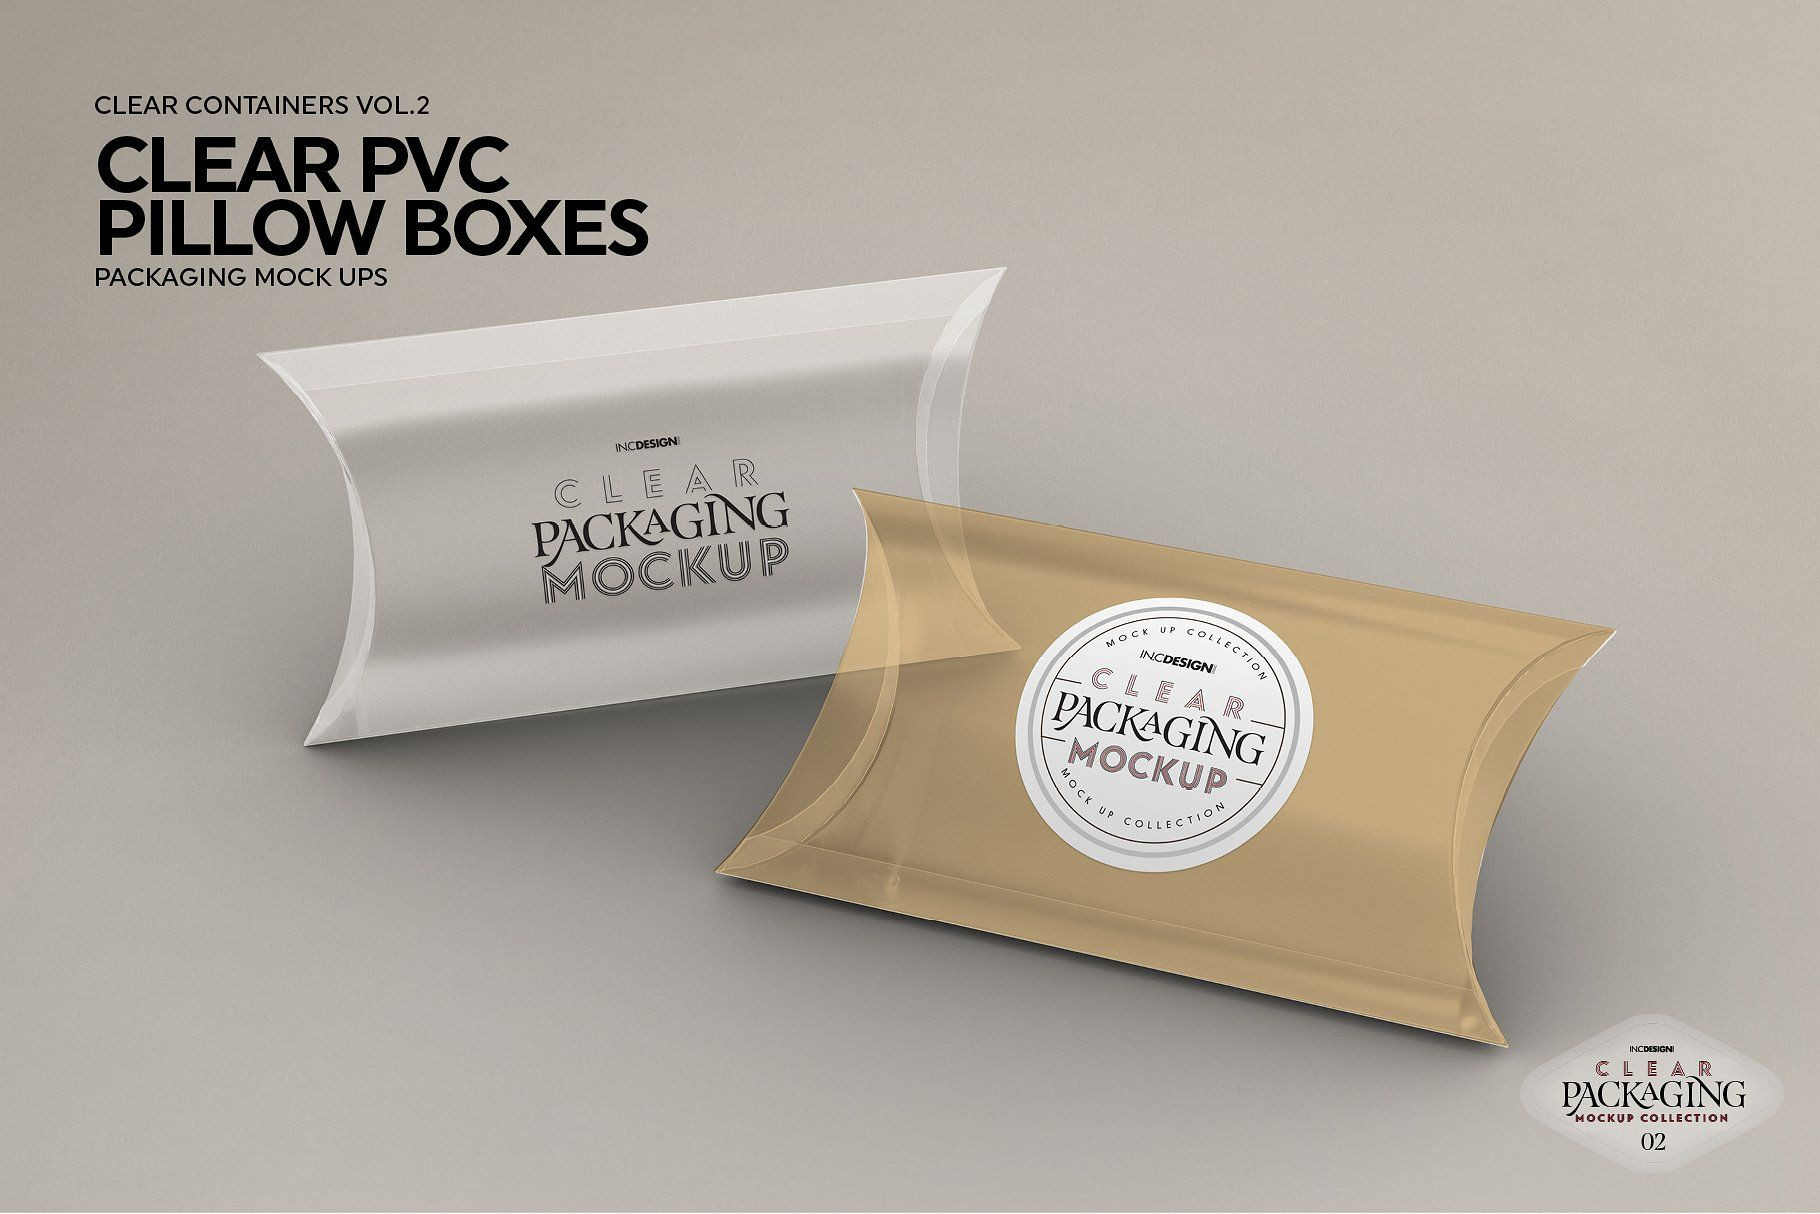 Clear Pillow Boxes Packaging Mockup Packaging Mockup Pillow Box Box Packaging